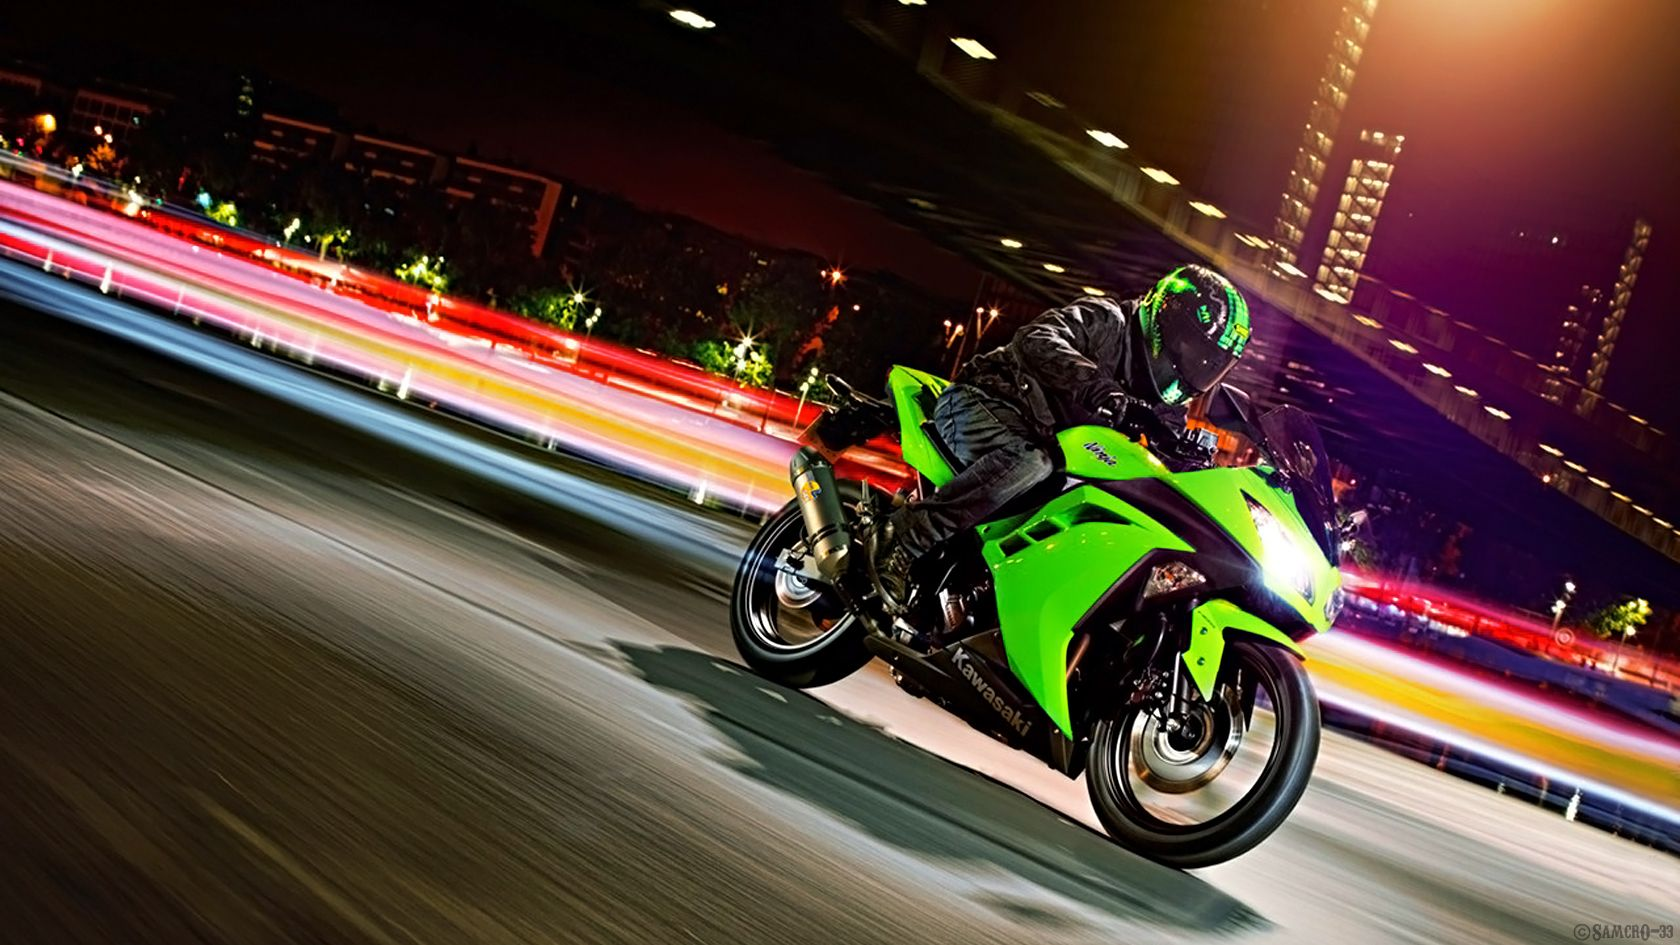 Kawasaki Ninja 300 Wallpaper HD